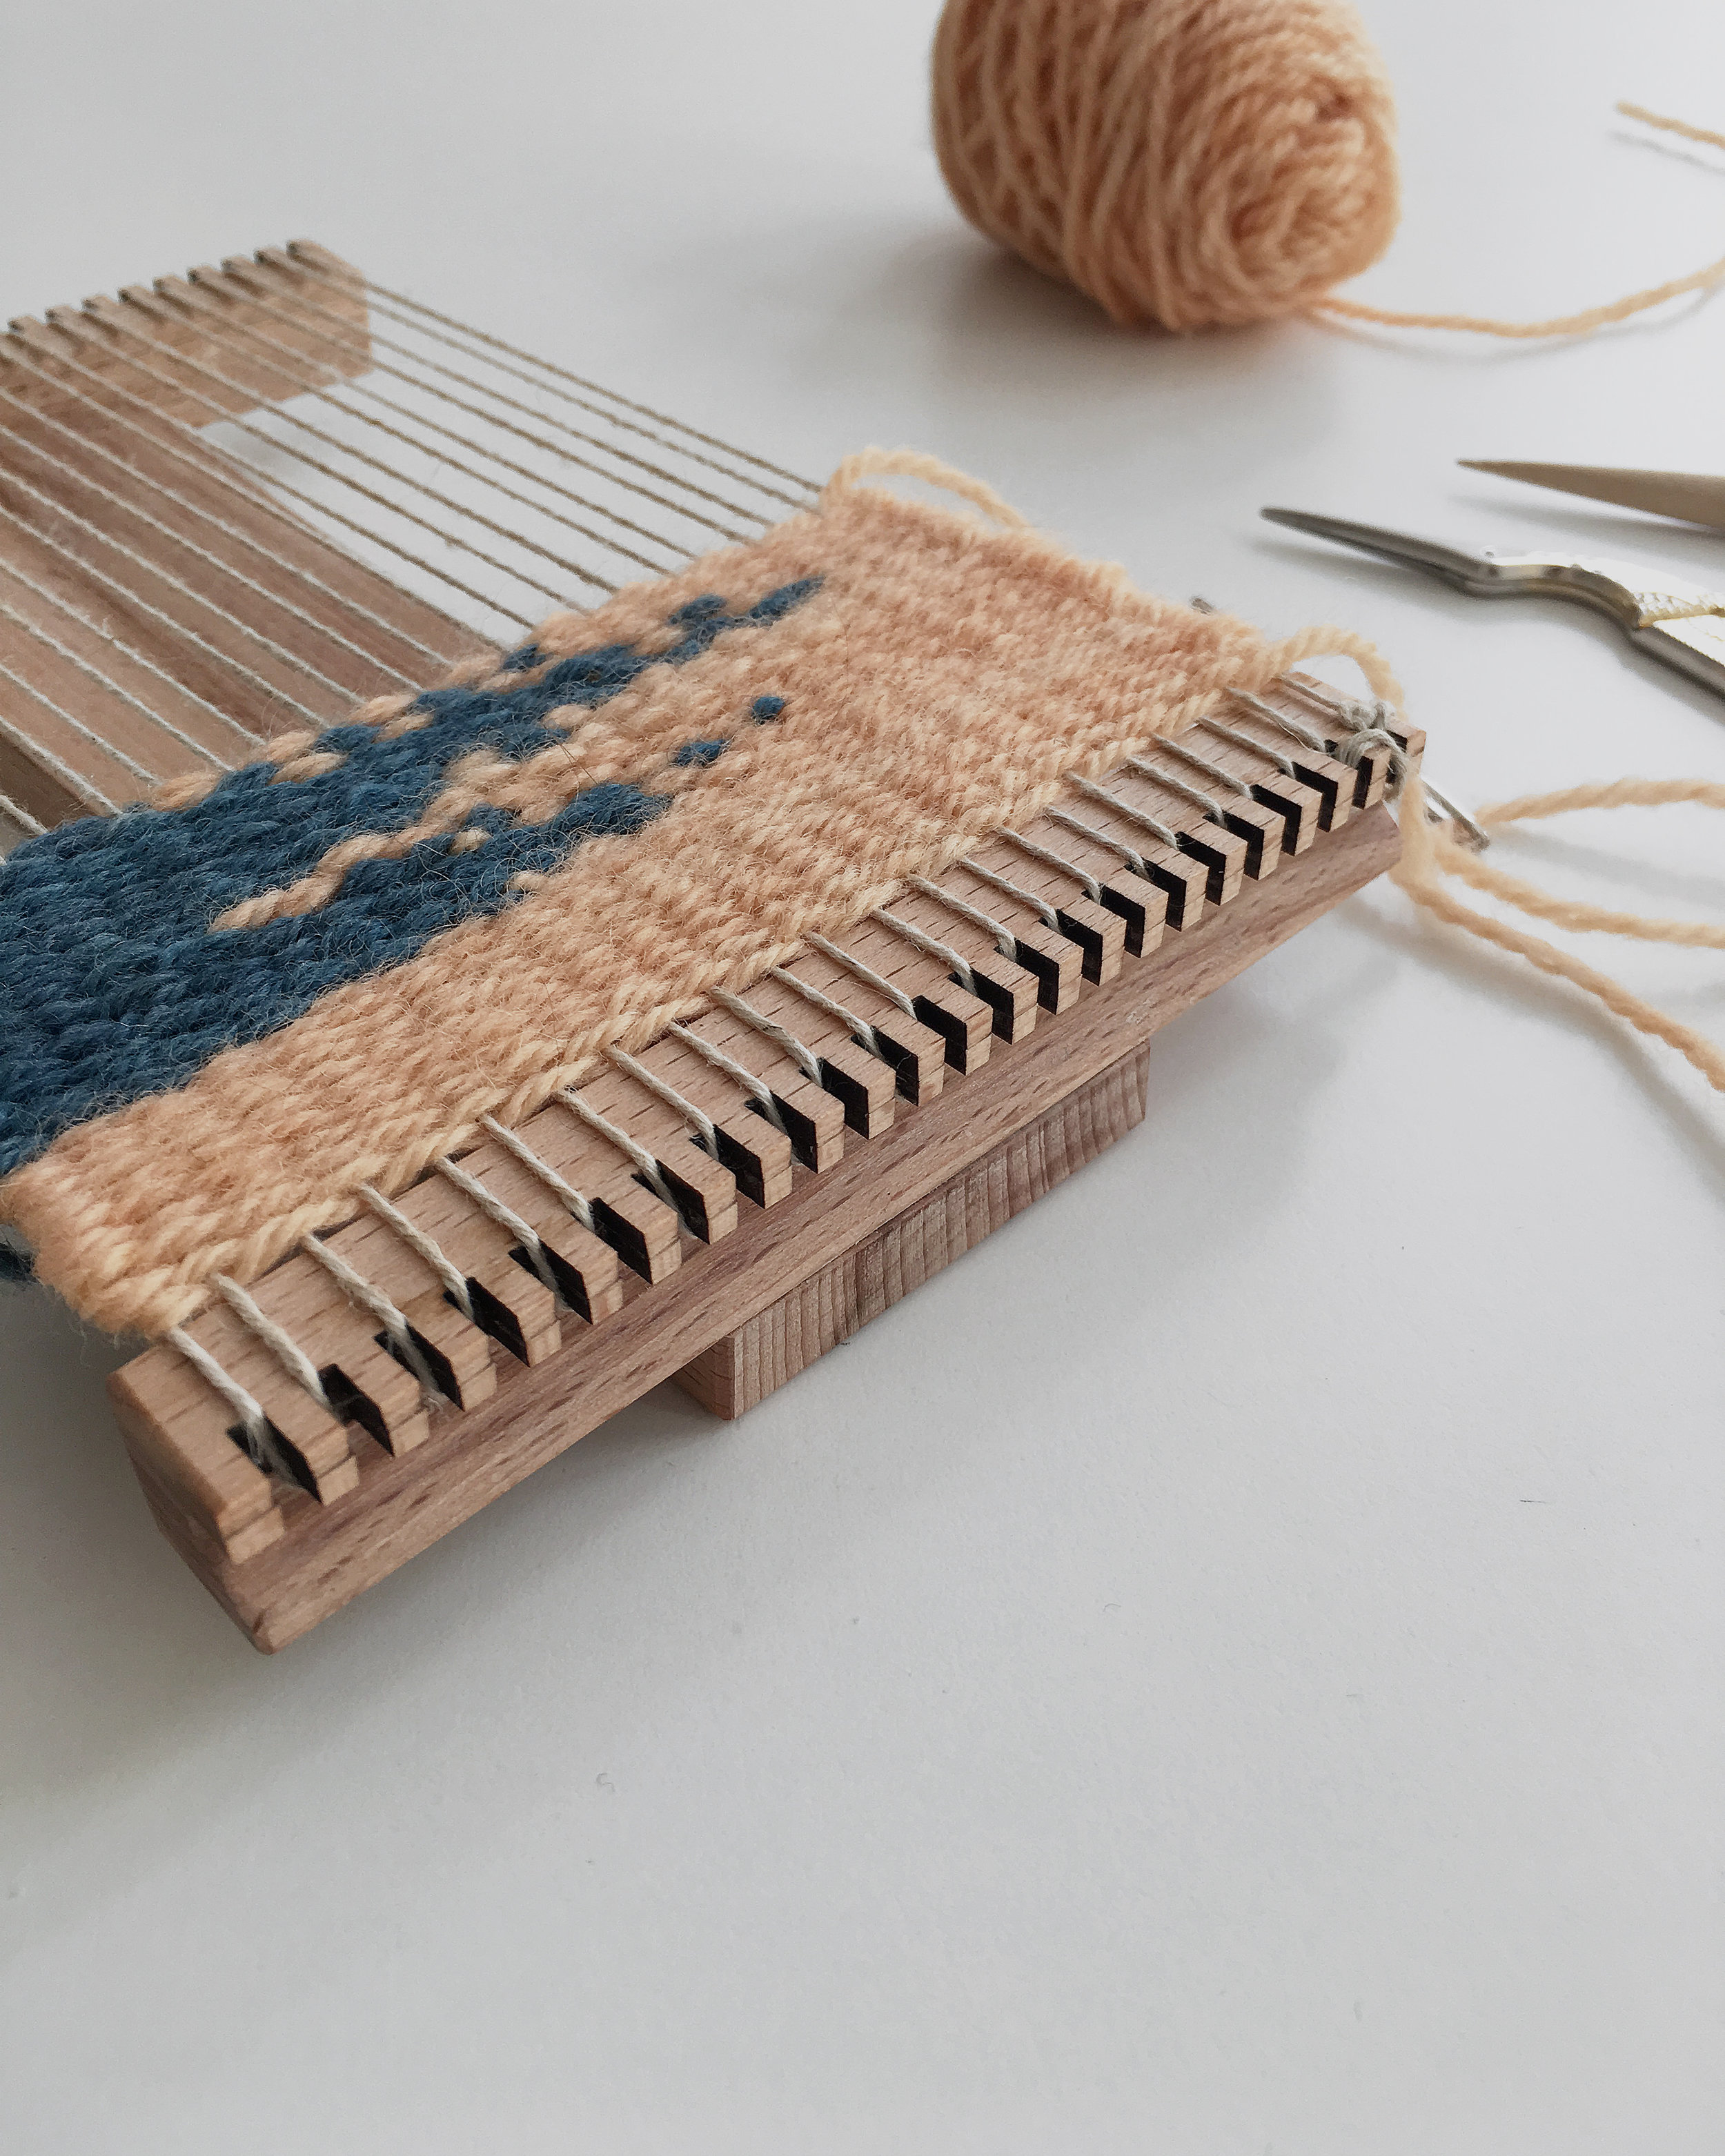 Mini travel looms with a safe warp holders and a comfy handle #loom #travel #weaving #handwoven #miniloom